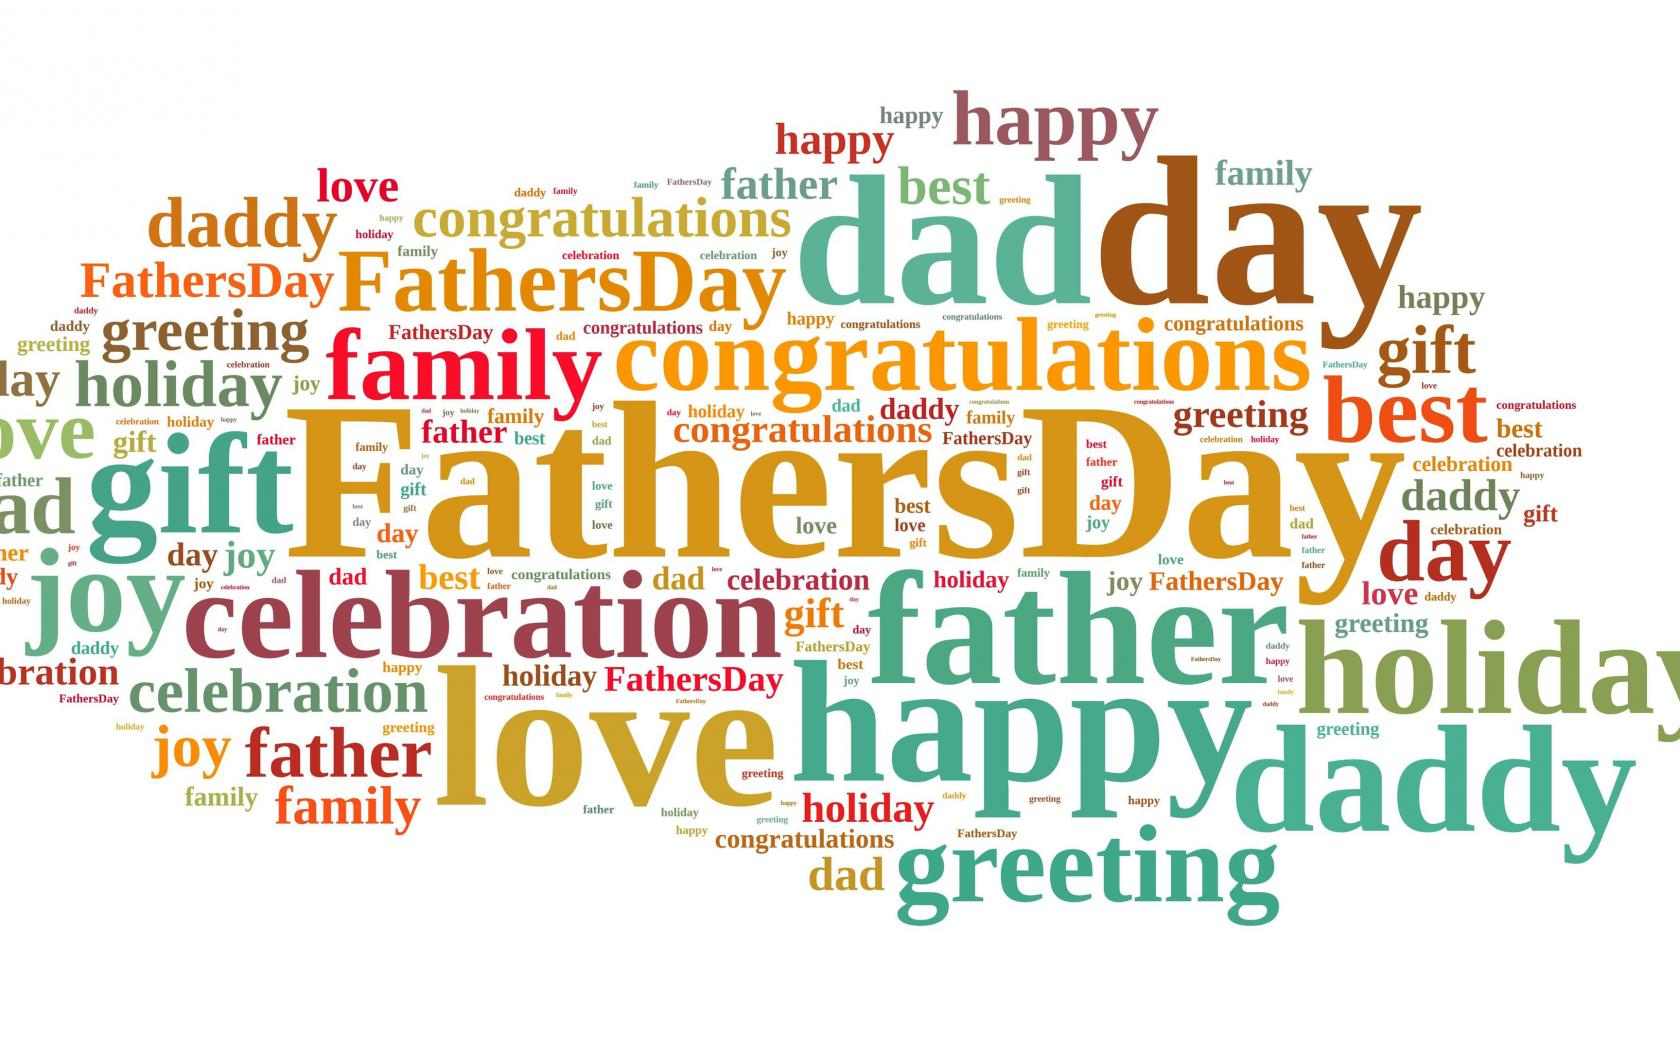 Happy Father's Day Wallpaper Greetings